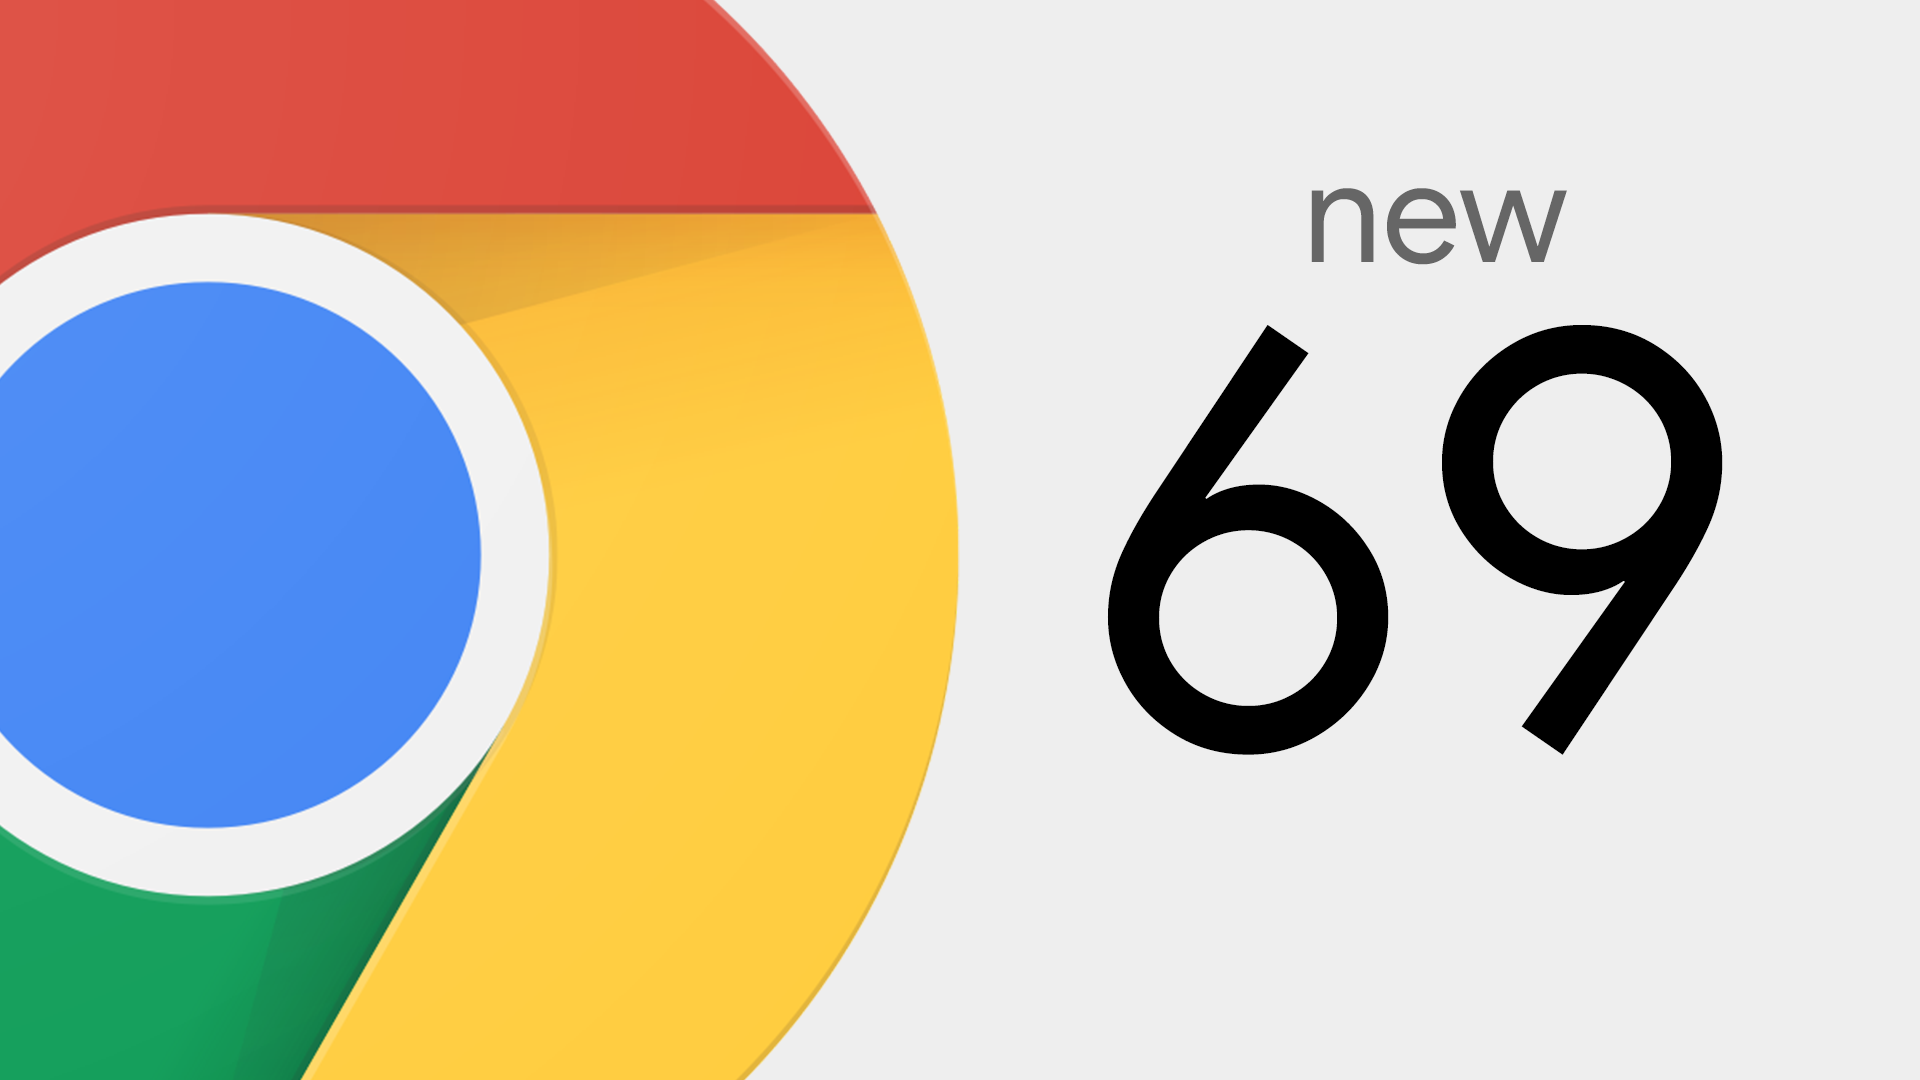 New in Chrome 69